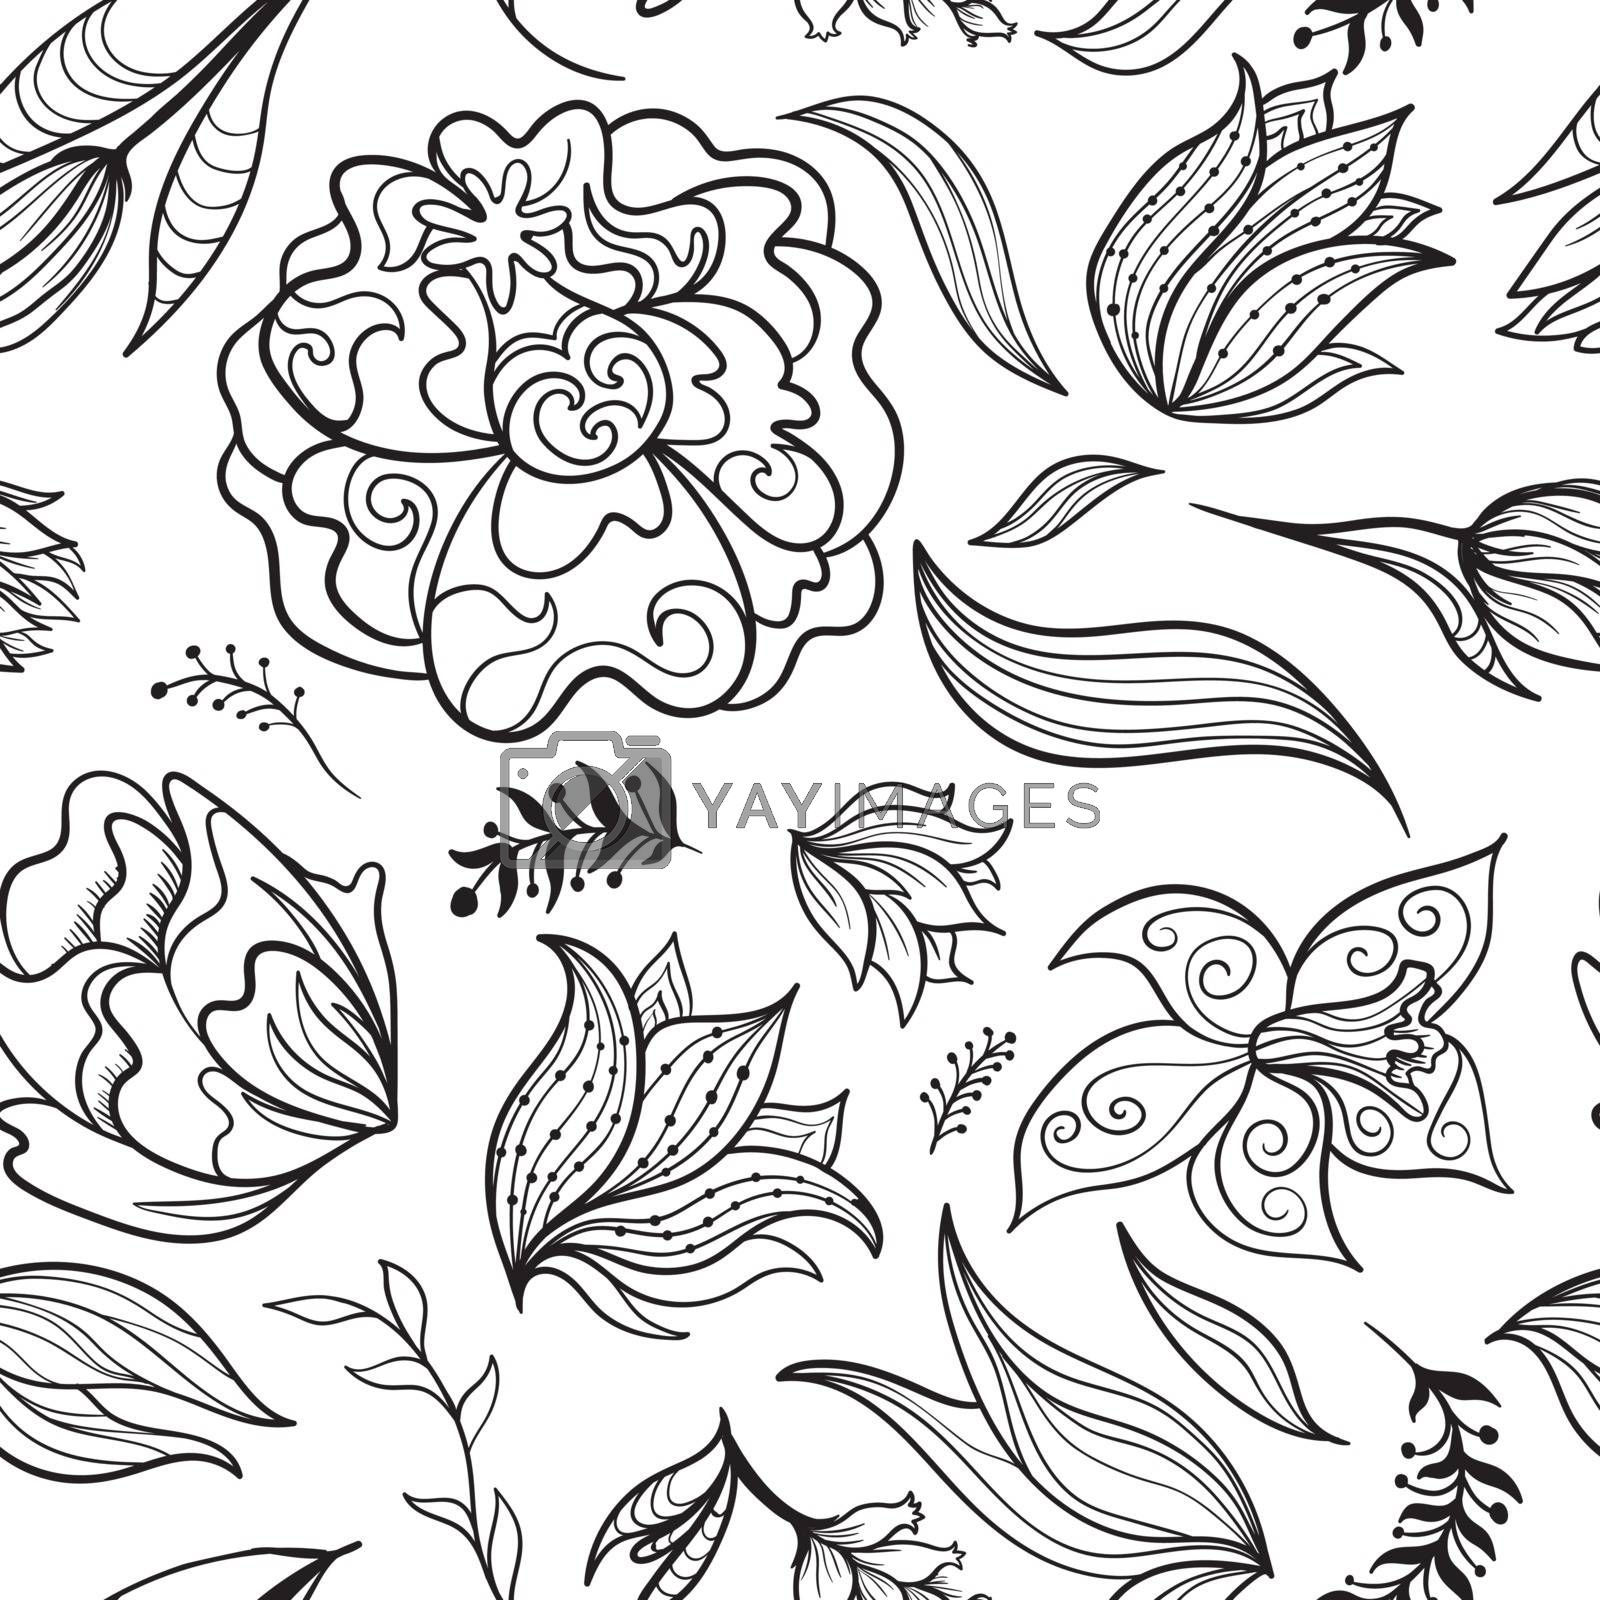 Seamless sketch texture with fantastic ornamental doodle flowers and leaves